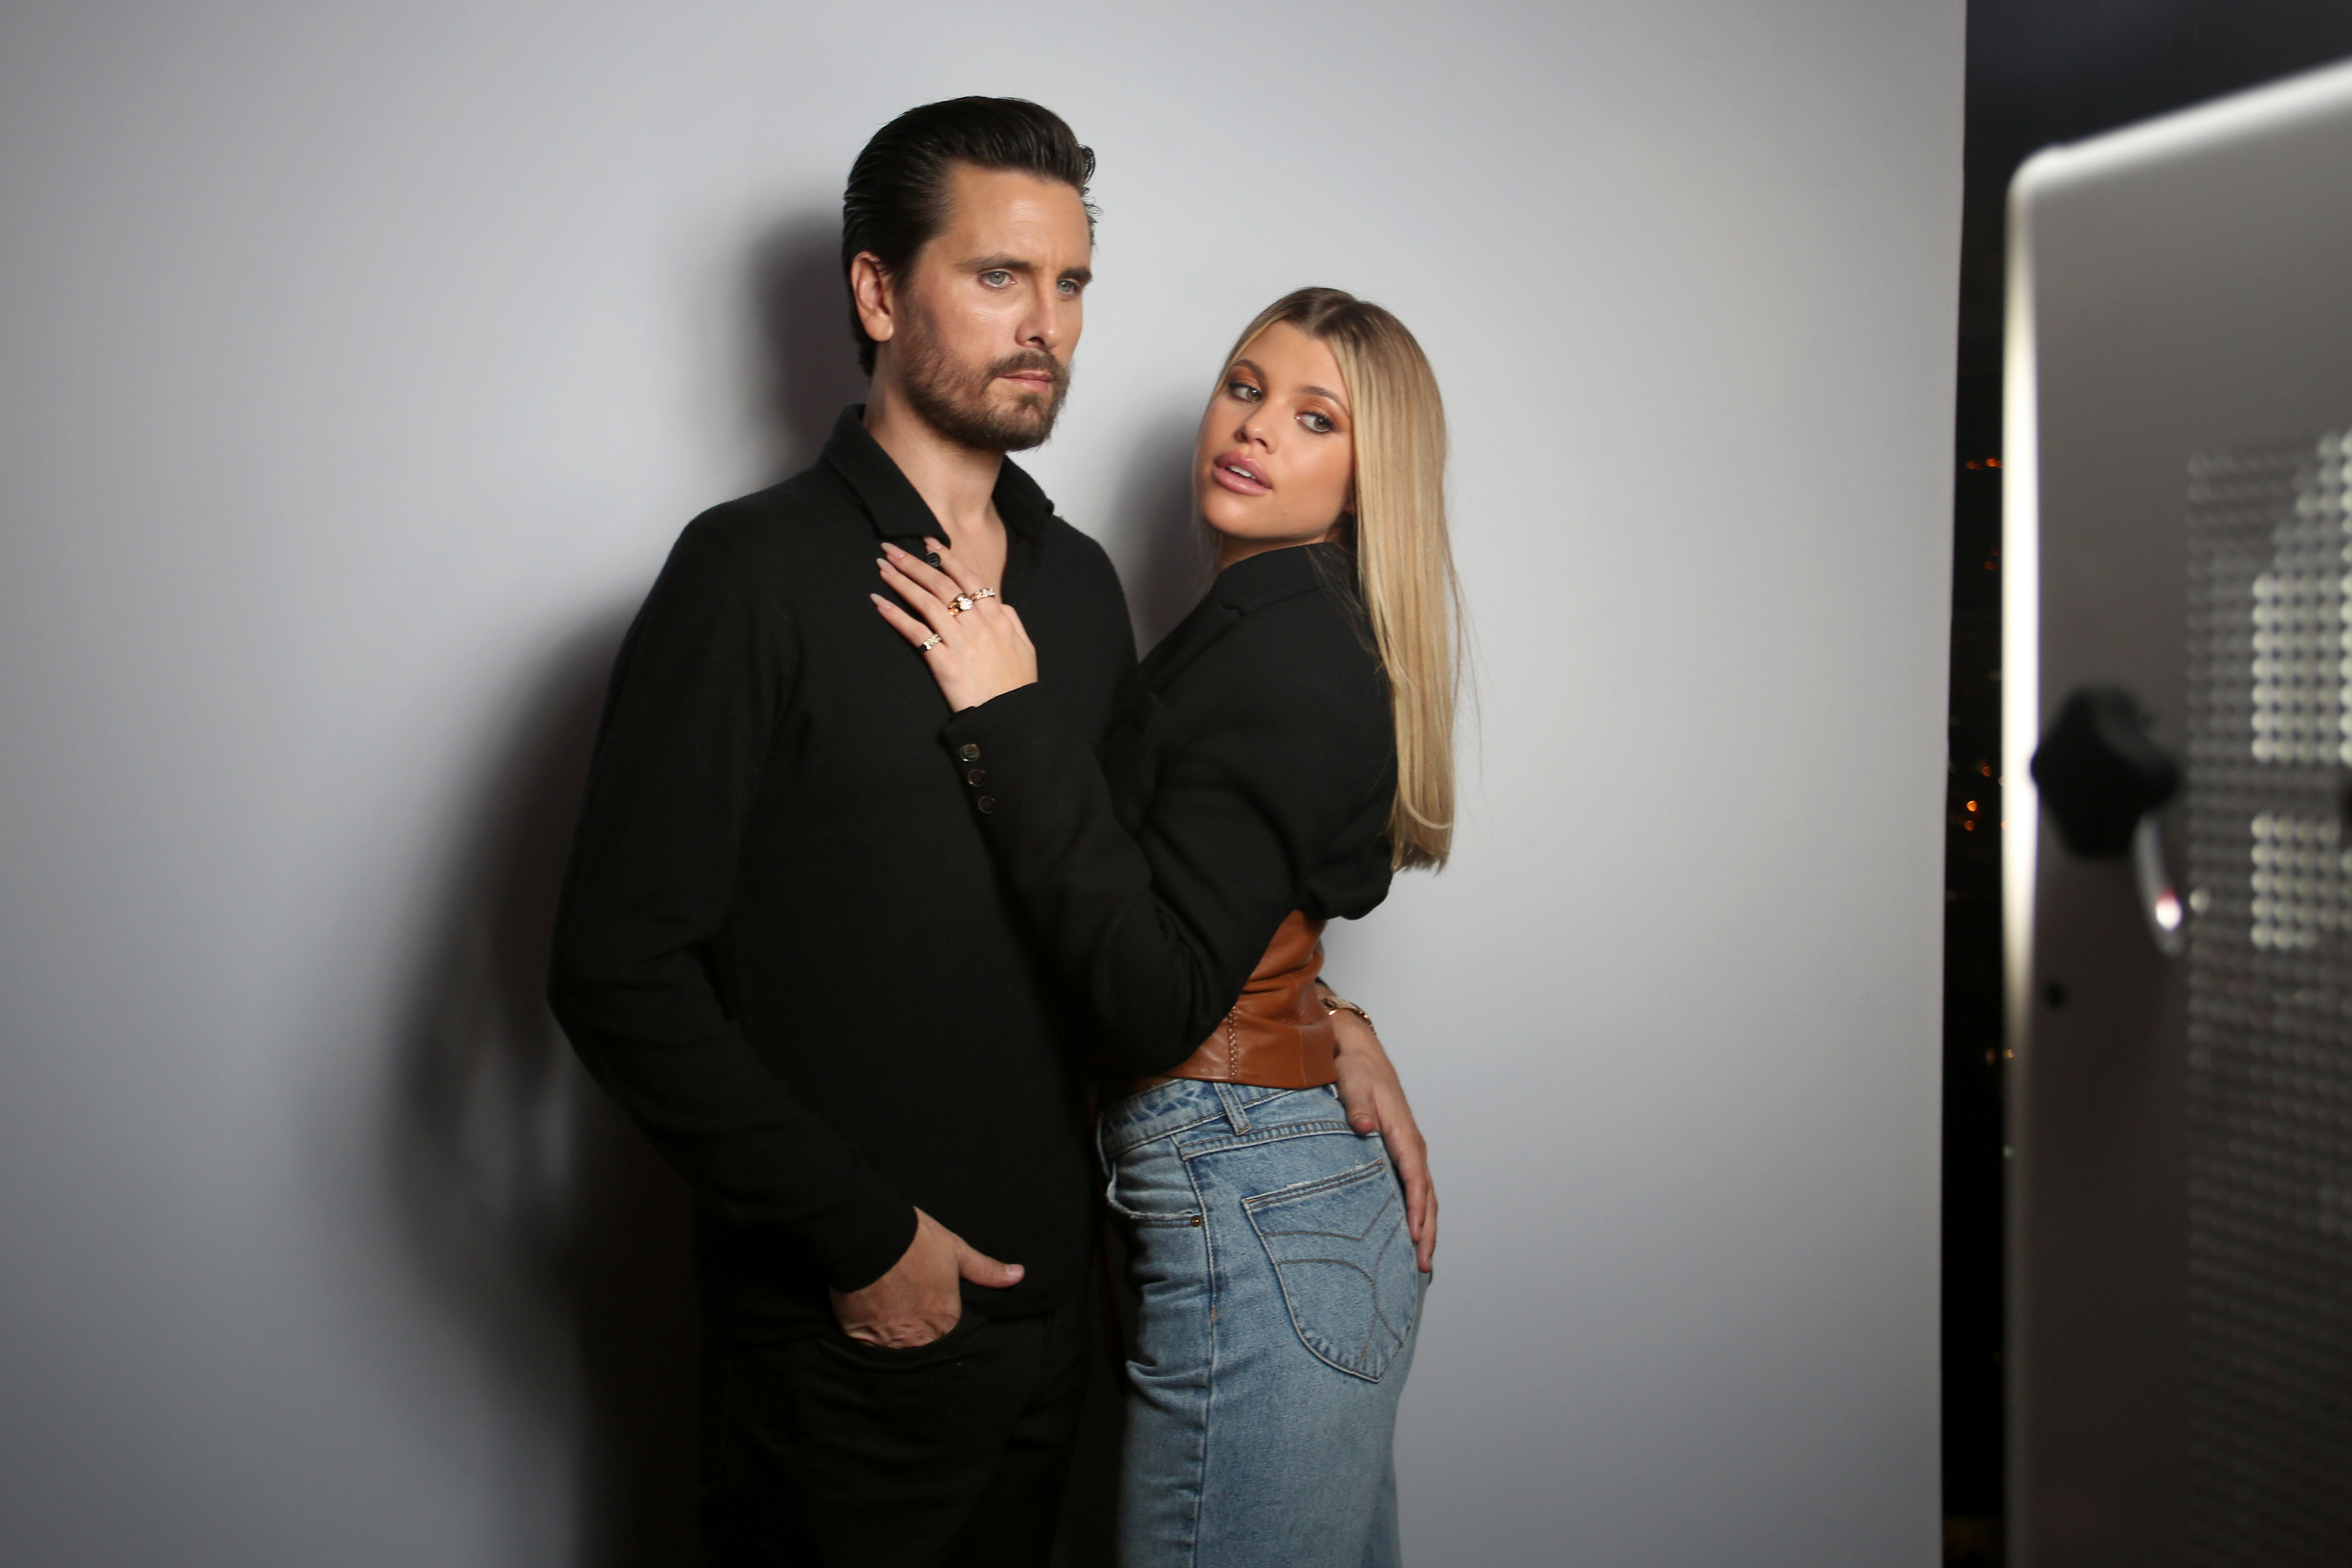 Scott Disick and Sofia Richie attend Rolla's x Sofia Richie Launch Event at Harriet's Rooftop on February 20, 2020 in West Hollywood, California